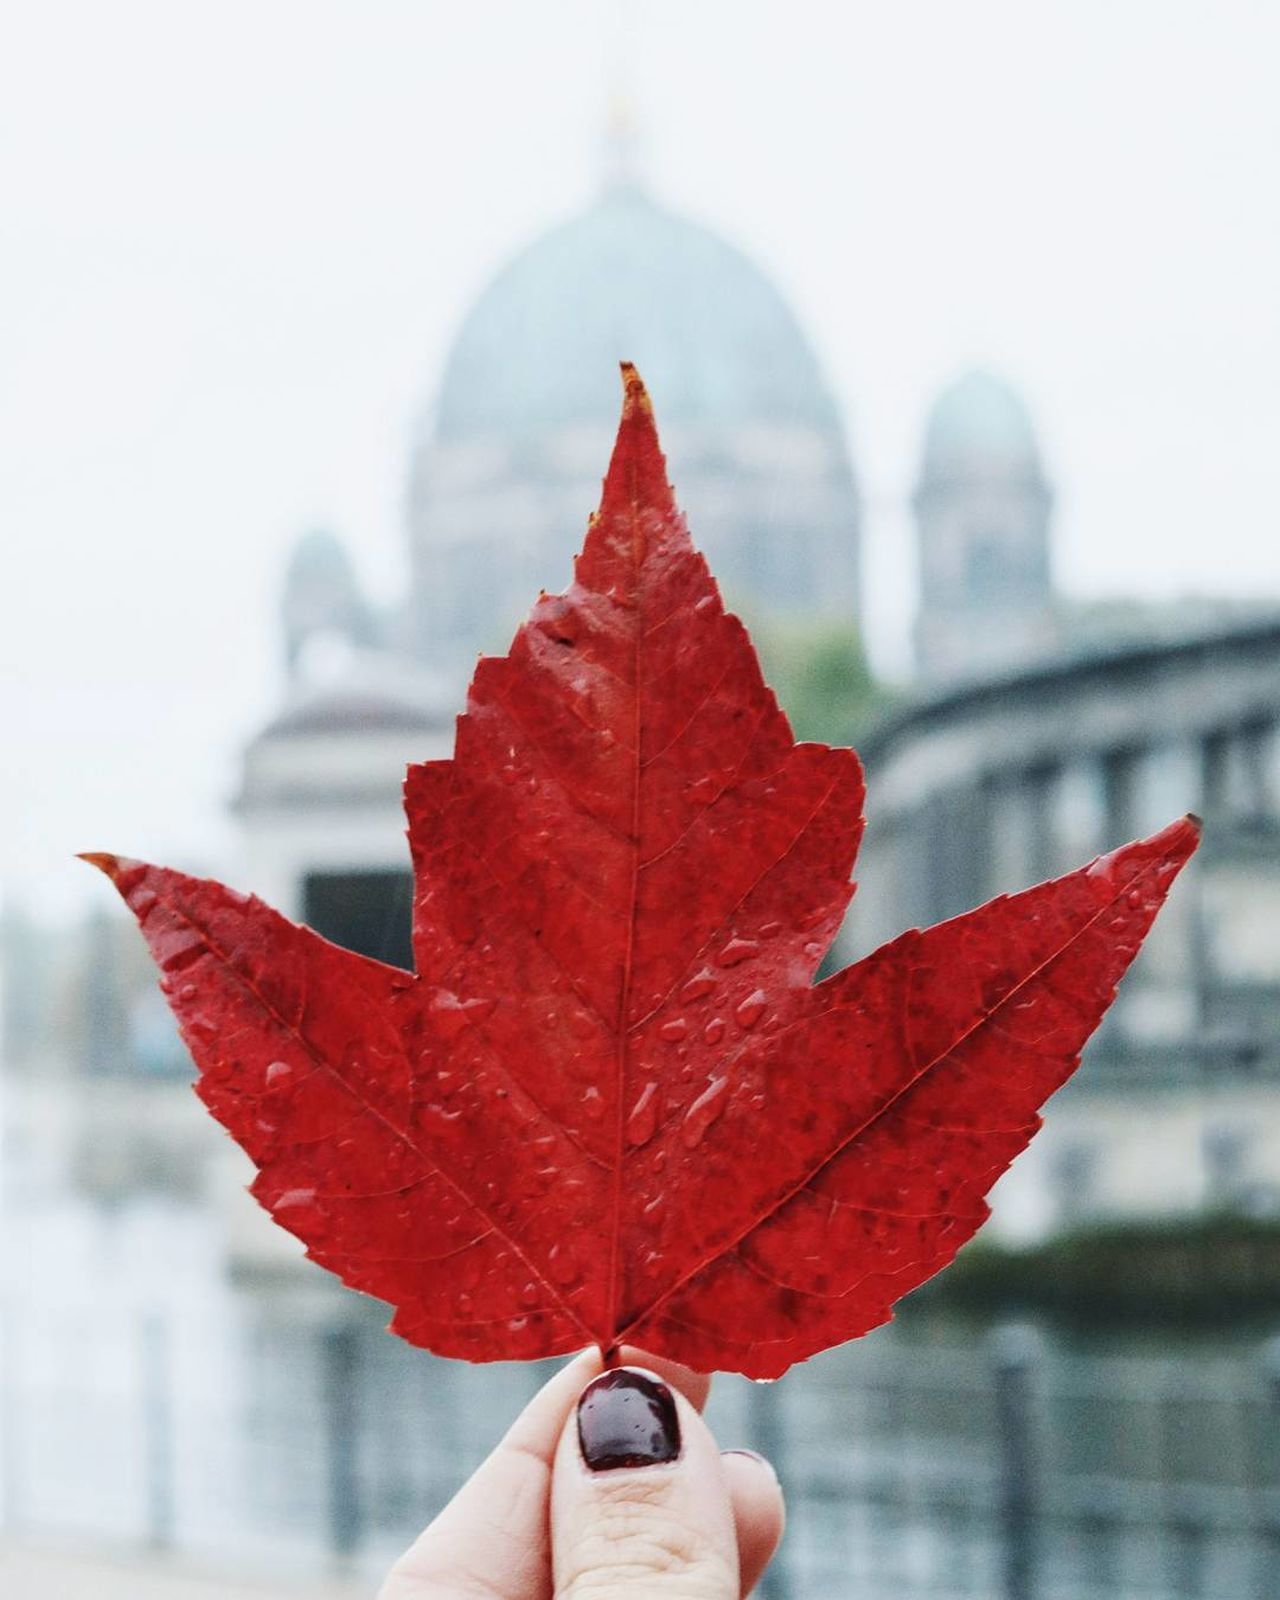 Focus Object Close-up Outdoors Human Hand Maple Leaf EyeEm Deutschland City Life EyeEm Best Shots Autumn Beauty In Nature Human Finger